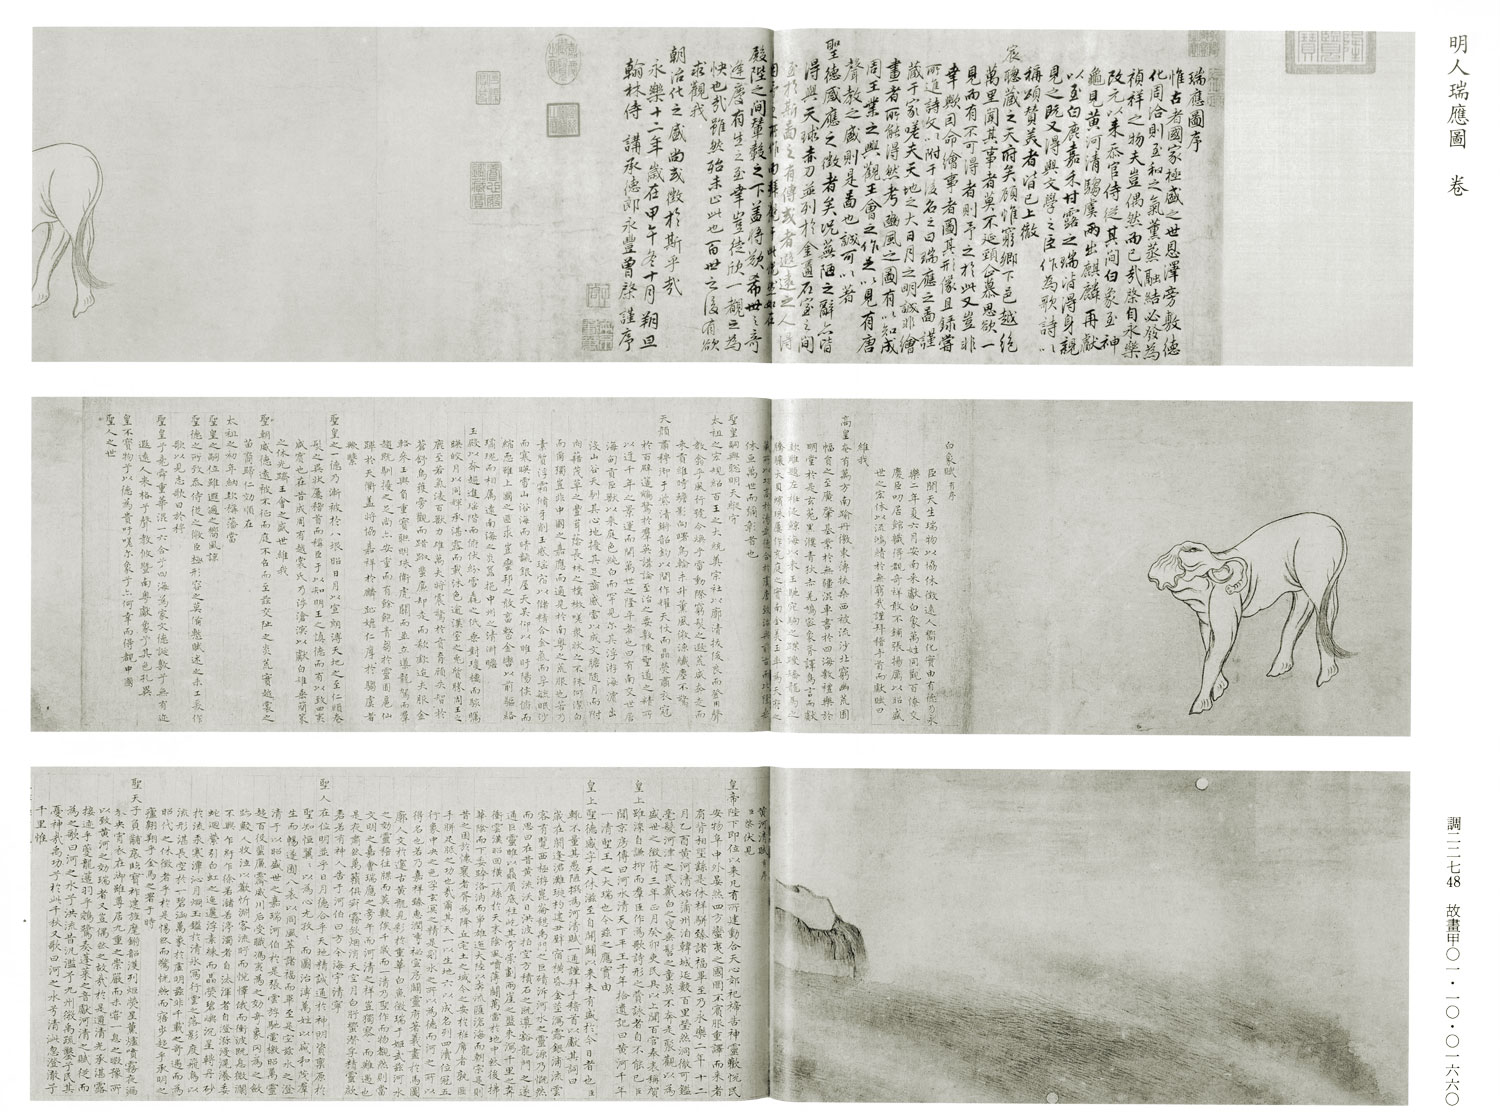 Three spreads from a book: at the top, the hindquarters of some kind of ruminant on the left, Chinese text on the right; in the middle, Chinese text on the left, an elephant walking leftward on the right; at the bottom, Chinese text on the left, an indistinct landscape on the right